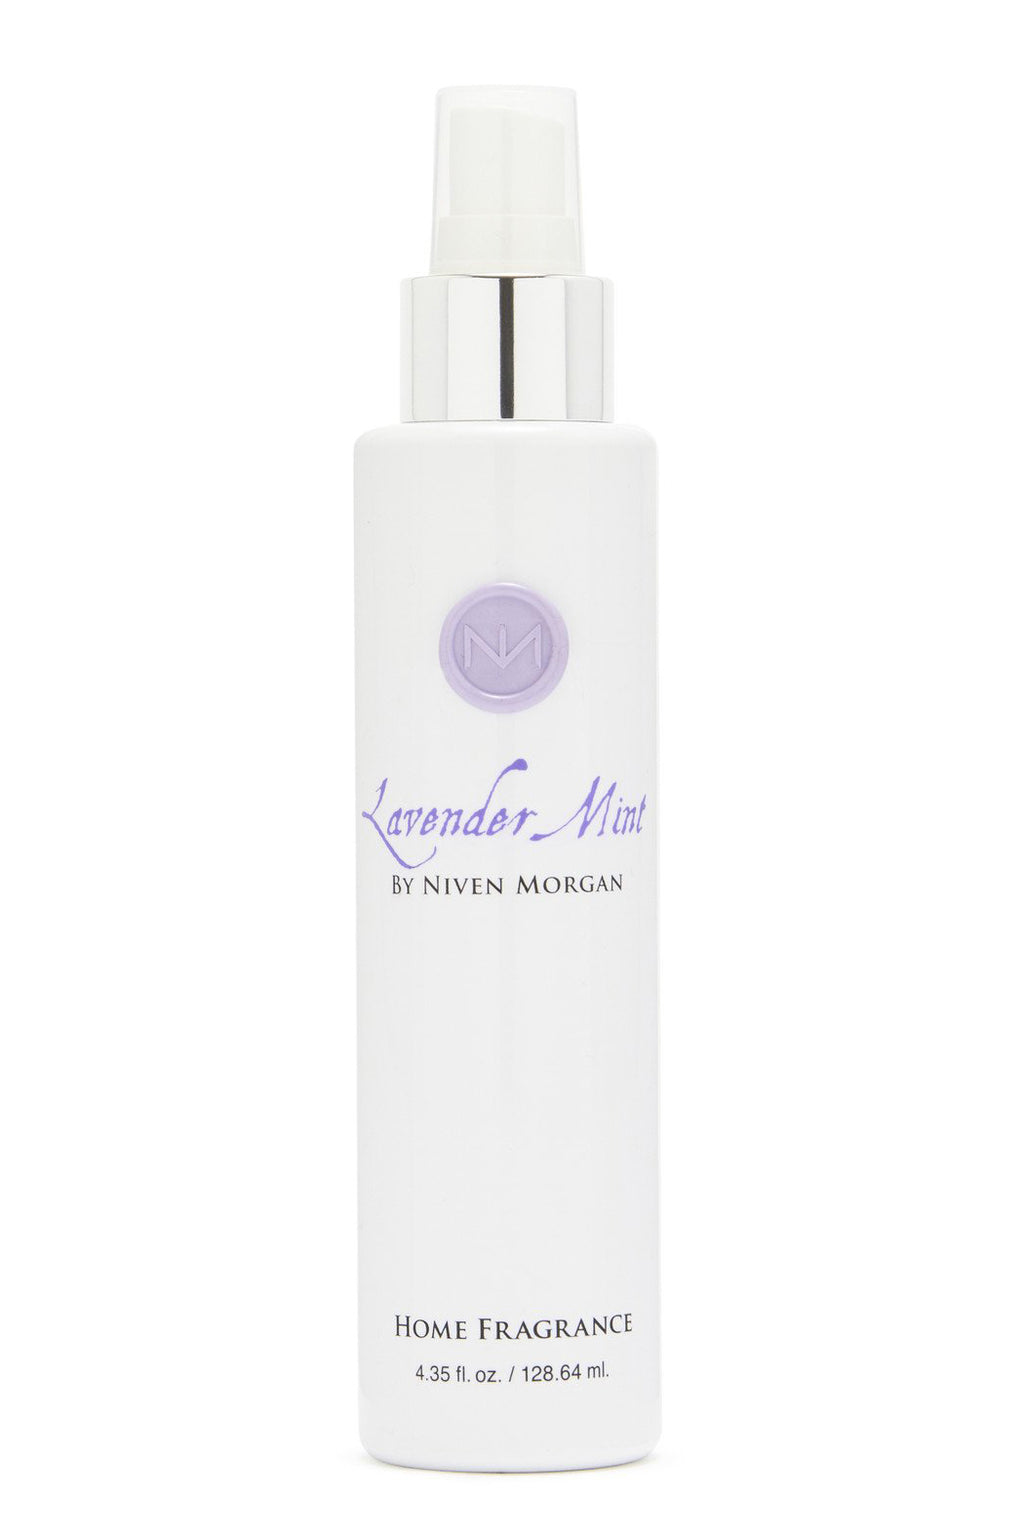 Niven Morgan - Lavender Mint Home Fragrance - kkgivingtree - K&K's Giving Tree